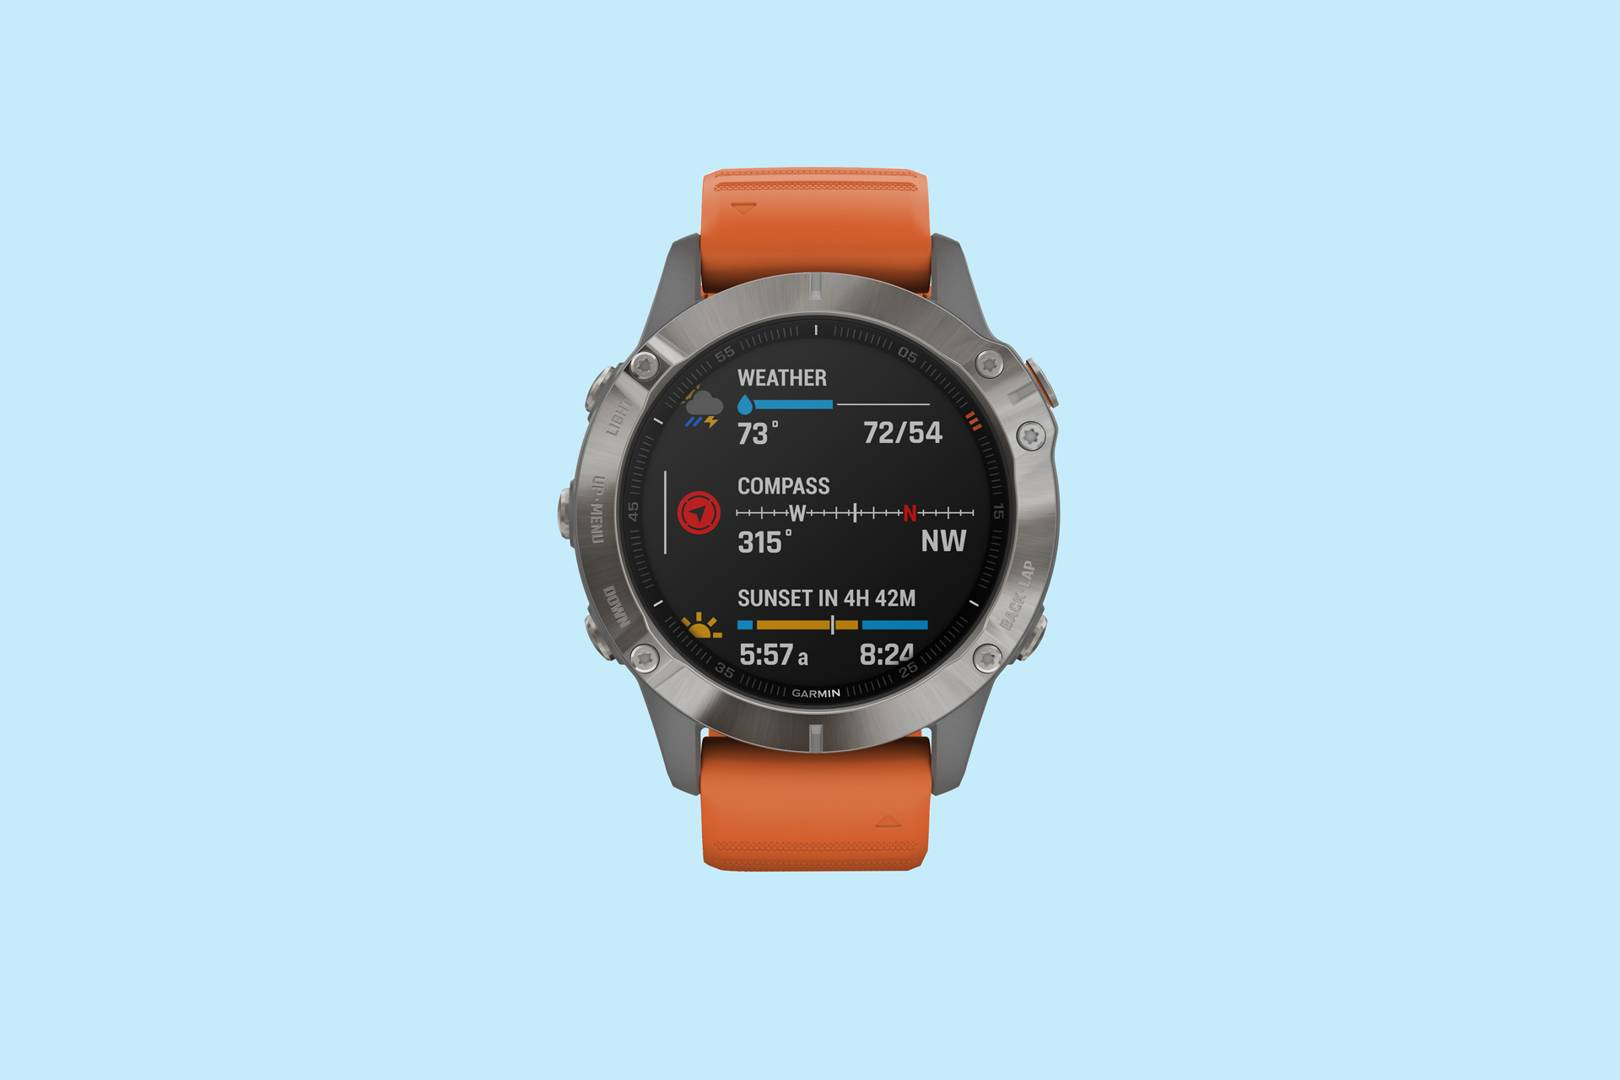 Garmin Fenix 6 hands-on review: still one of the best   WIRED UK